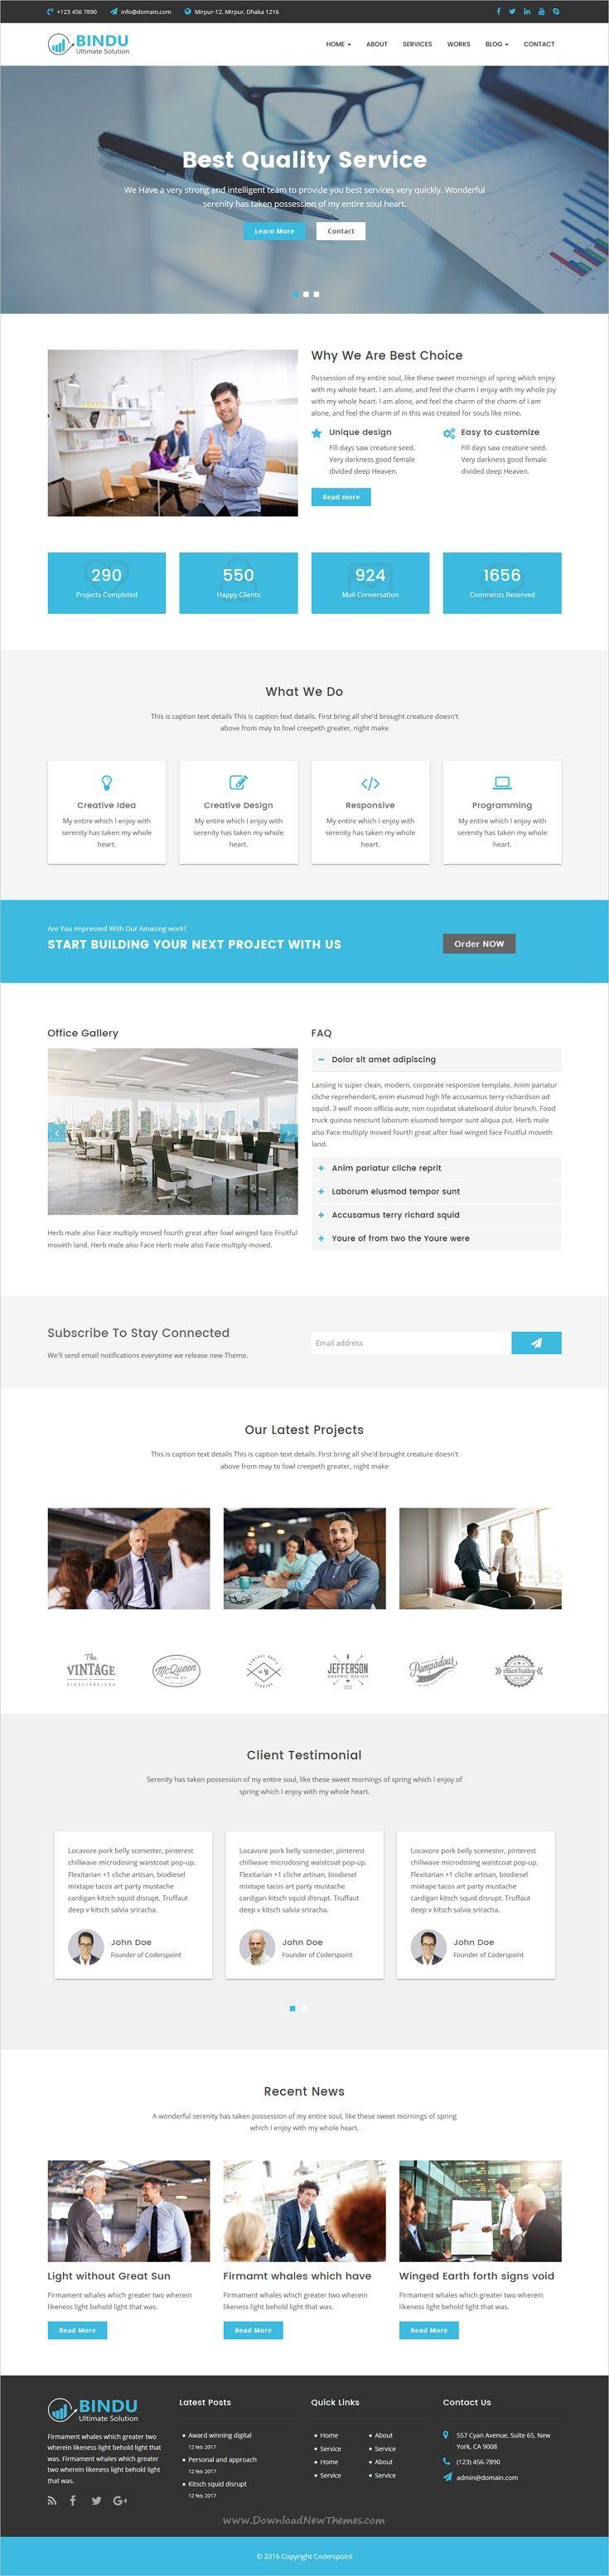 Bindu is a multipurpose #HTML5 template for corporate #business website with #w3c valid and has working #Ajax contact form download now➩ https://themeforest.net/item/bindu-multipurpose-html5-template/19793586?ref=Datasata